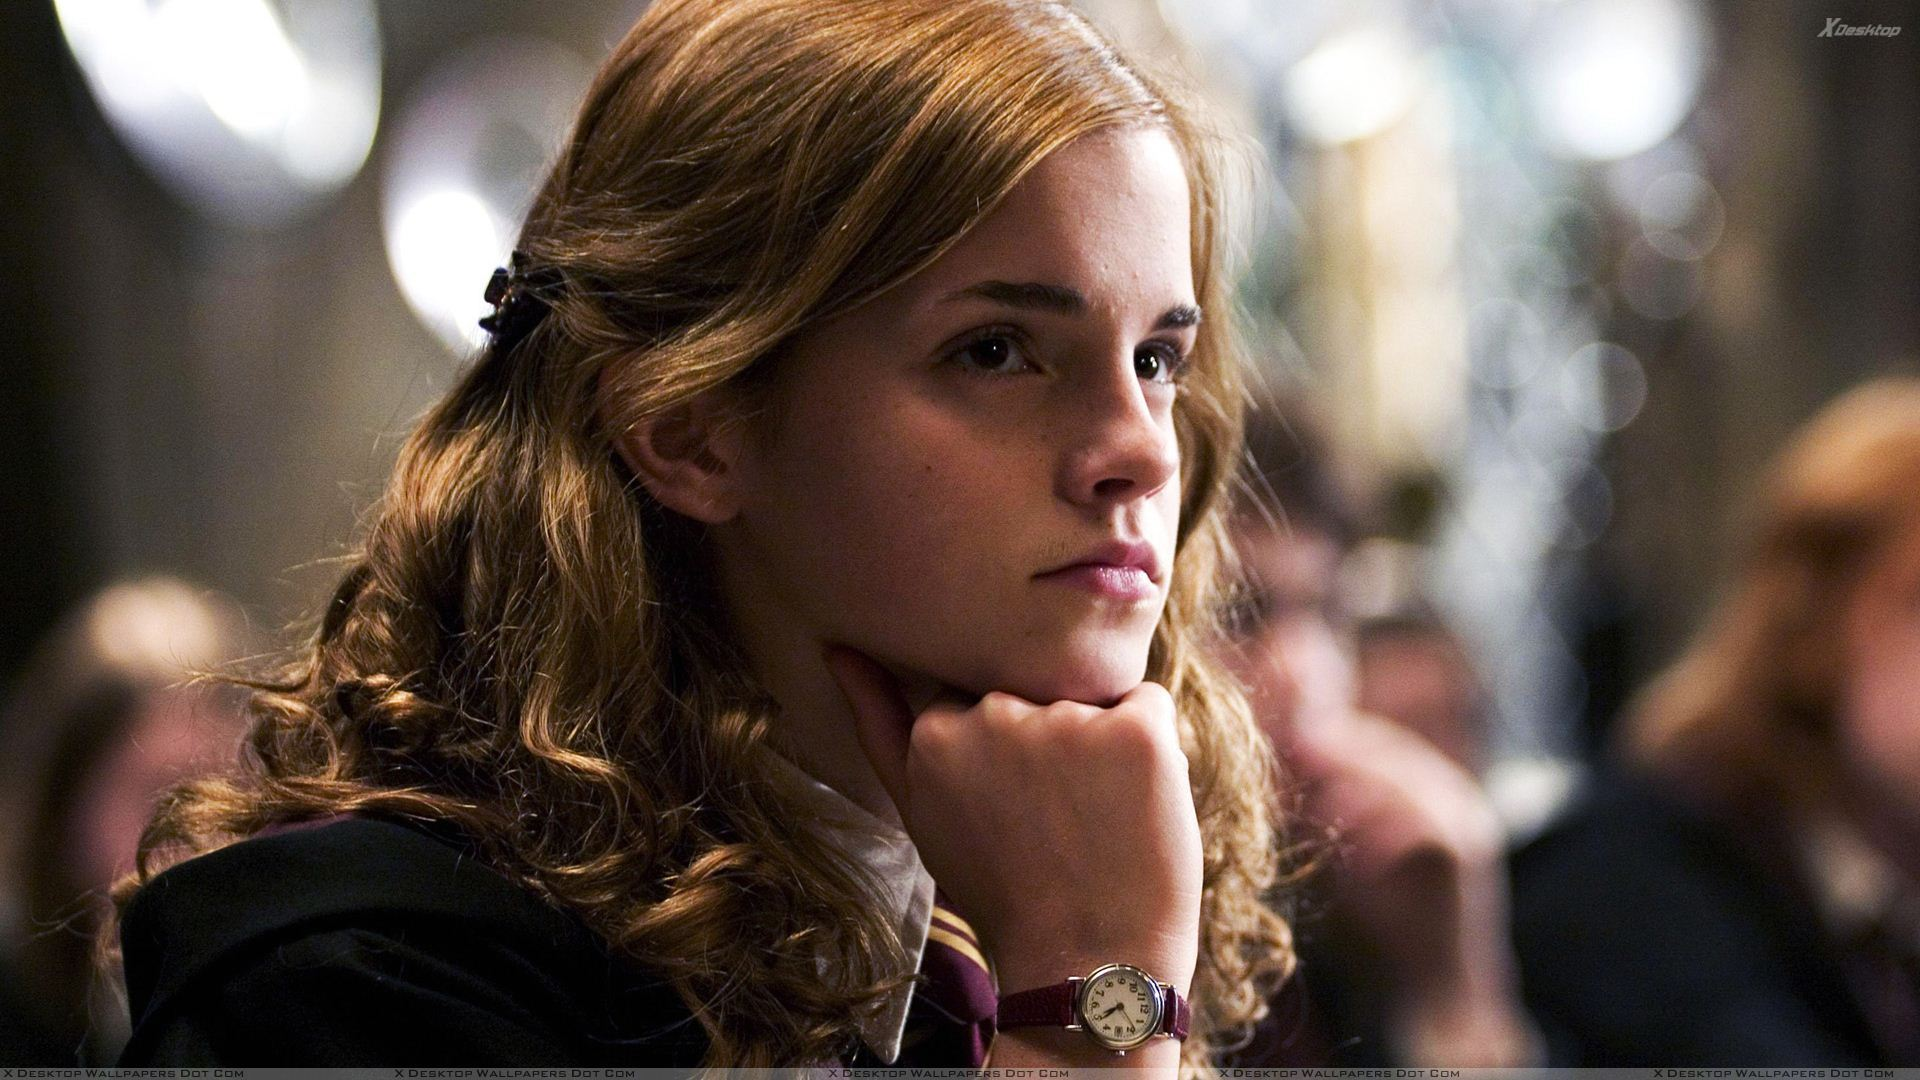 harry potter – emma watson as hermione granger wallpaper